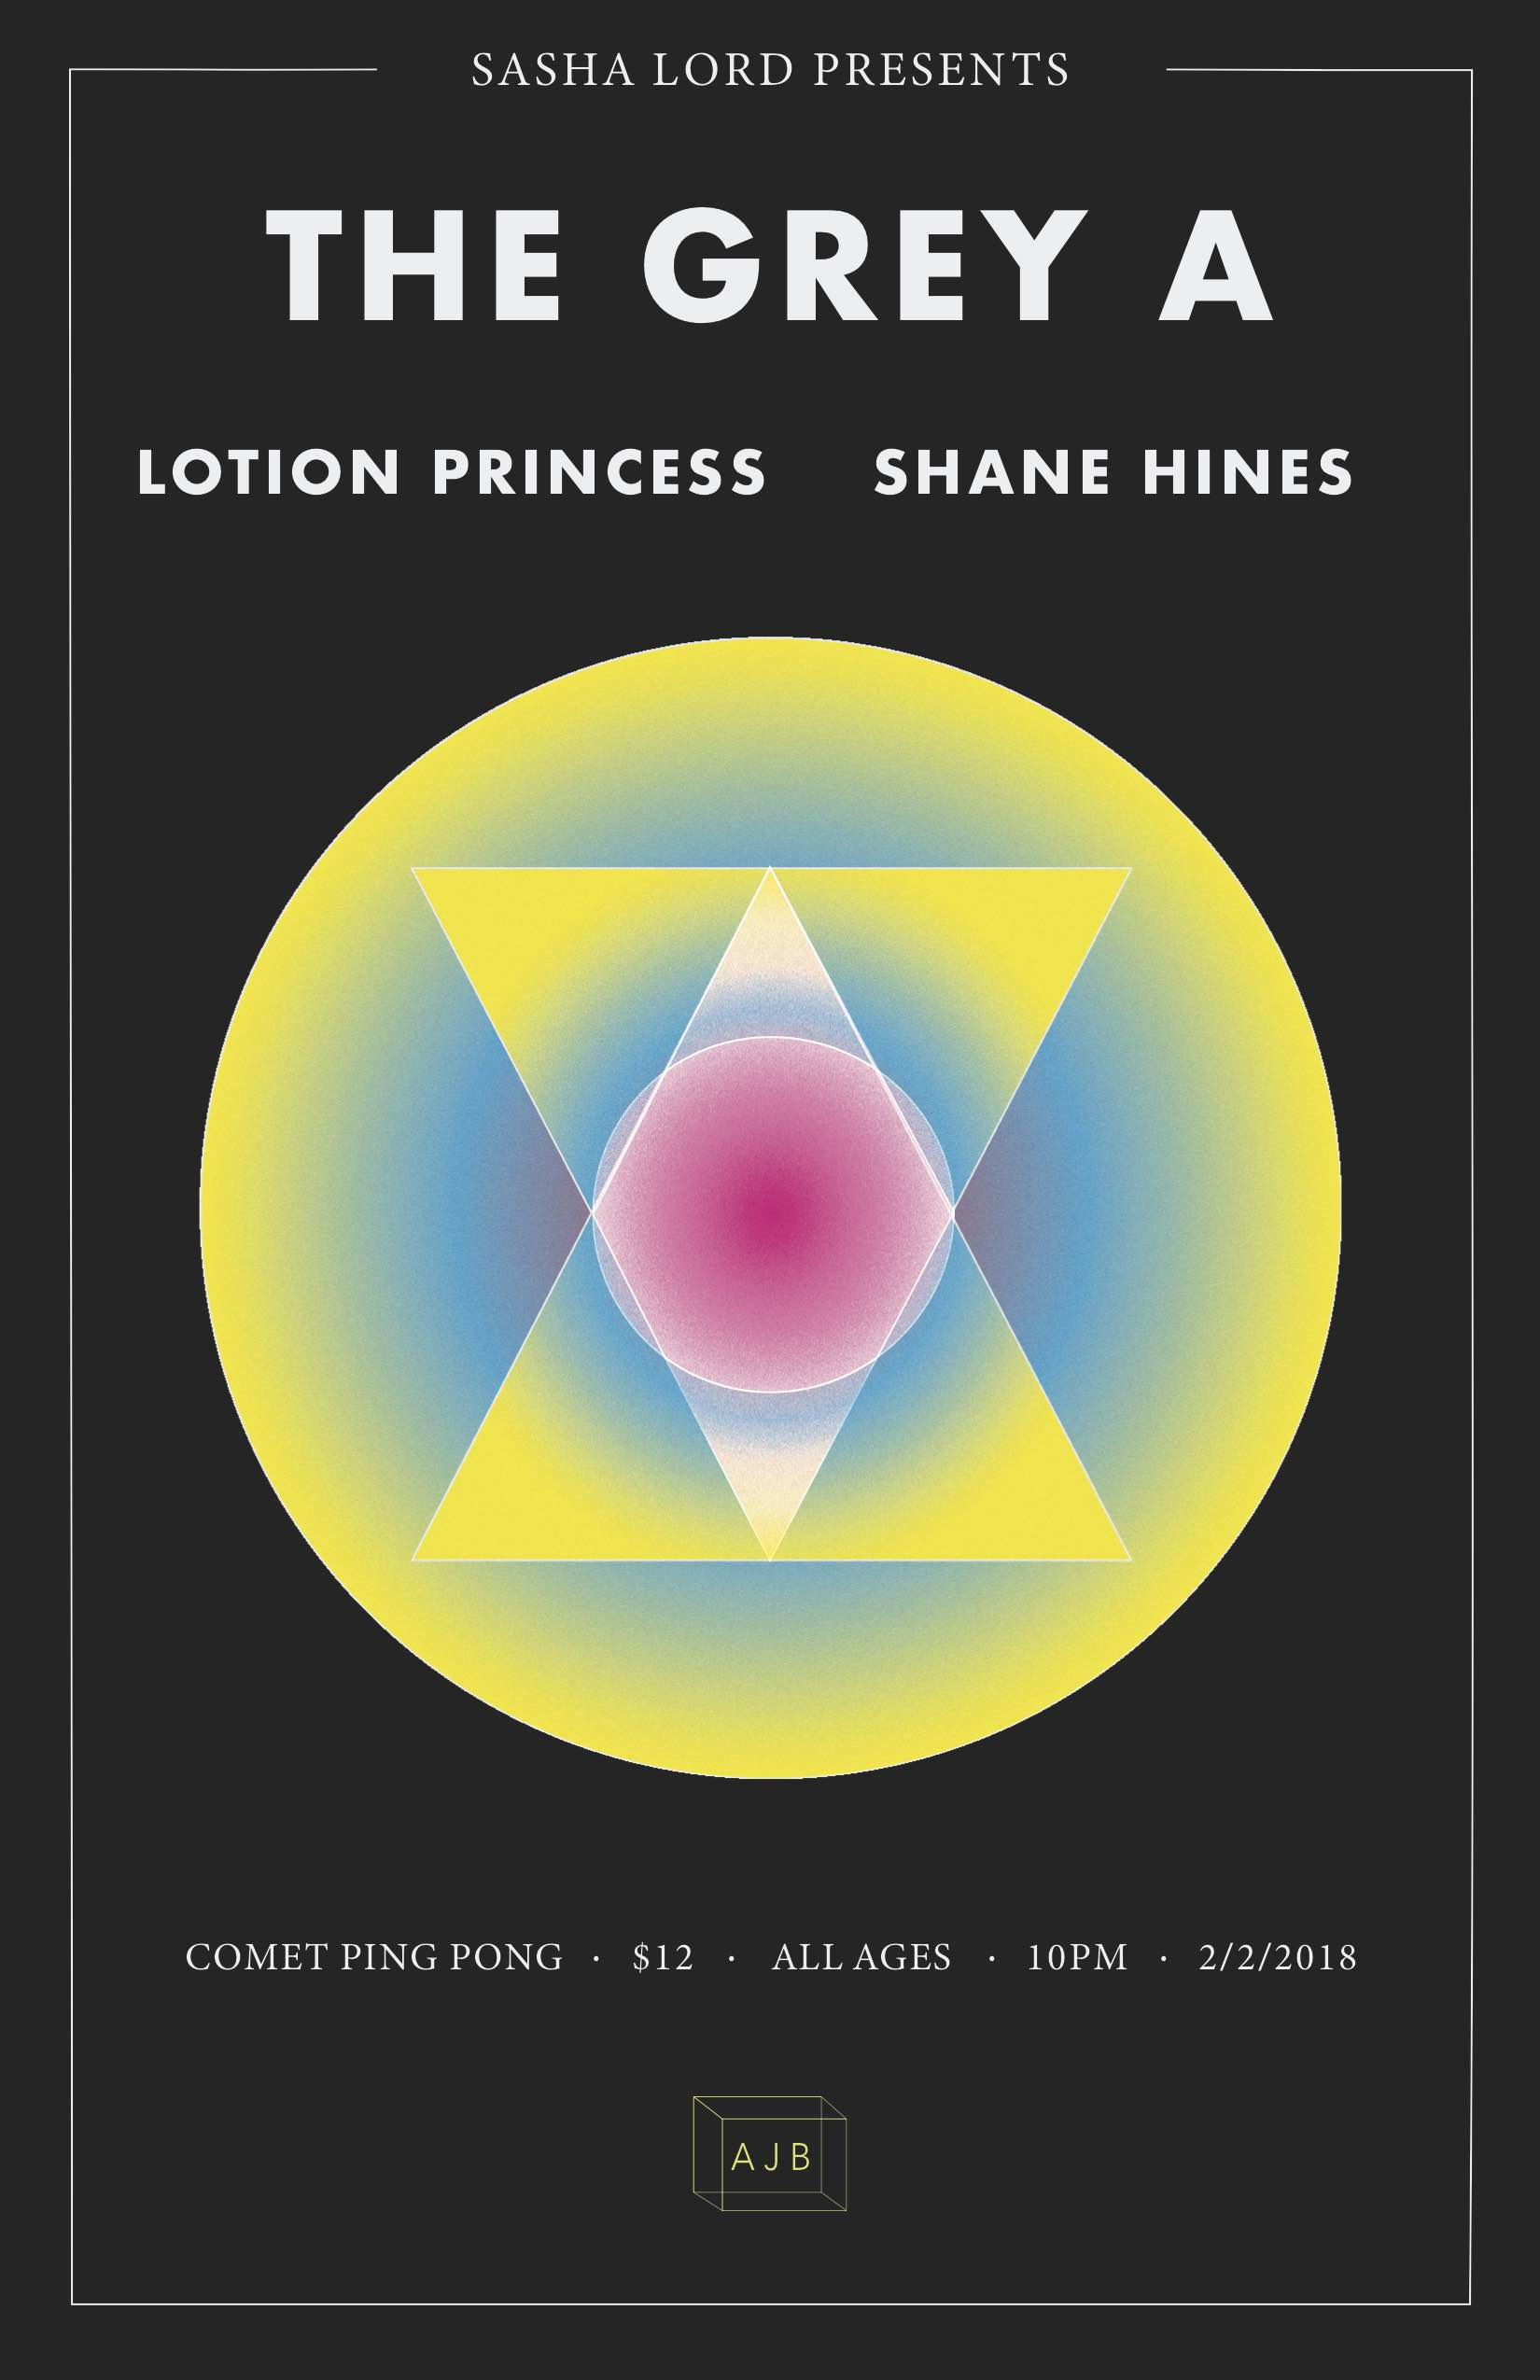 Friday, Feb 2ndComet Ping Pongthe Grey A - w/ Lotion Princess and Shane Hines10pm & all ages$12